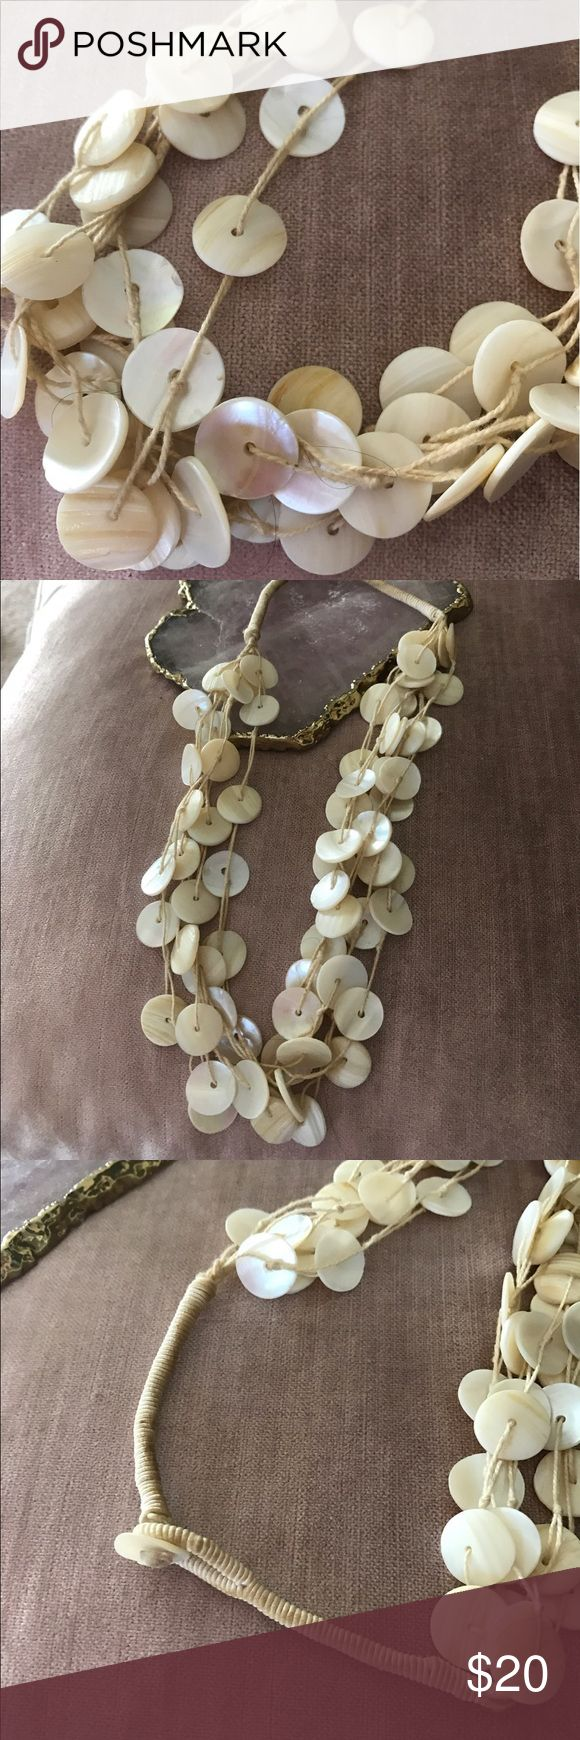 🍧just In American Eagle Outfitters necklace Adorable AE abalone shell 3-strand necklace, no broken pieces, cream cording see photo for darkening of cream price discounted , this is very well made very pretty necklace jewel length casual Boho or tropical dates a great statement piece American Eagle Outfitters Jewelry Necklaces